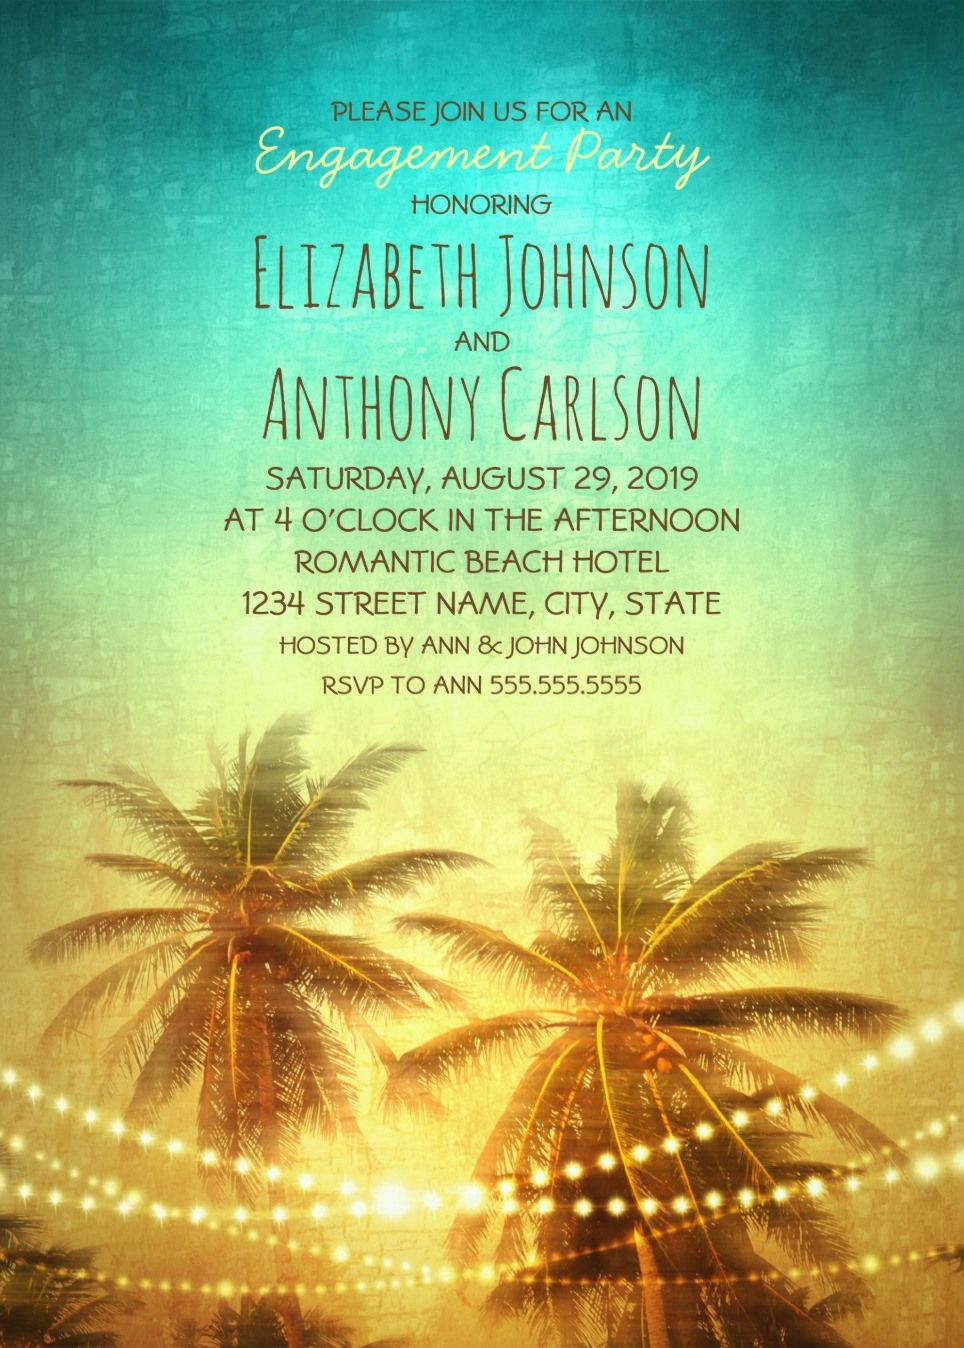 Tropical Beach Engagement Party Invitations - String Light Palm ...